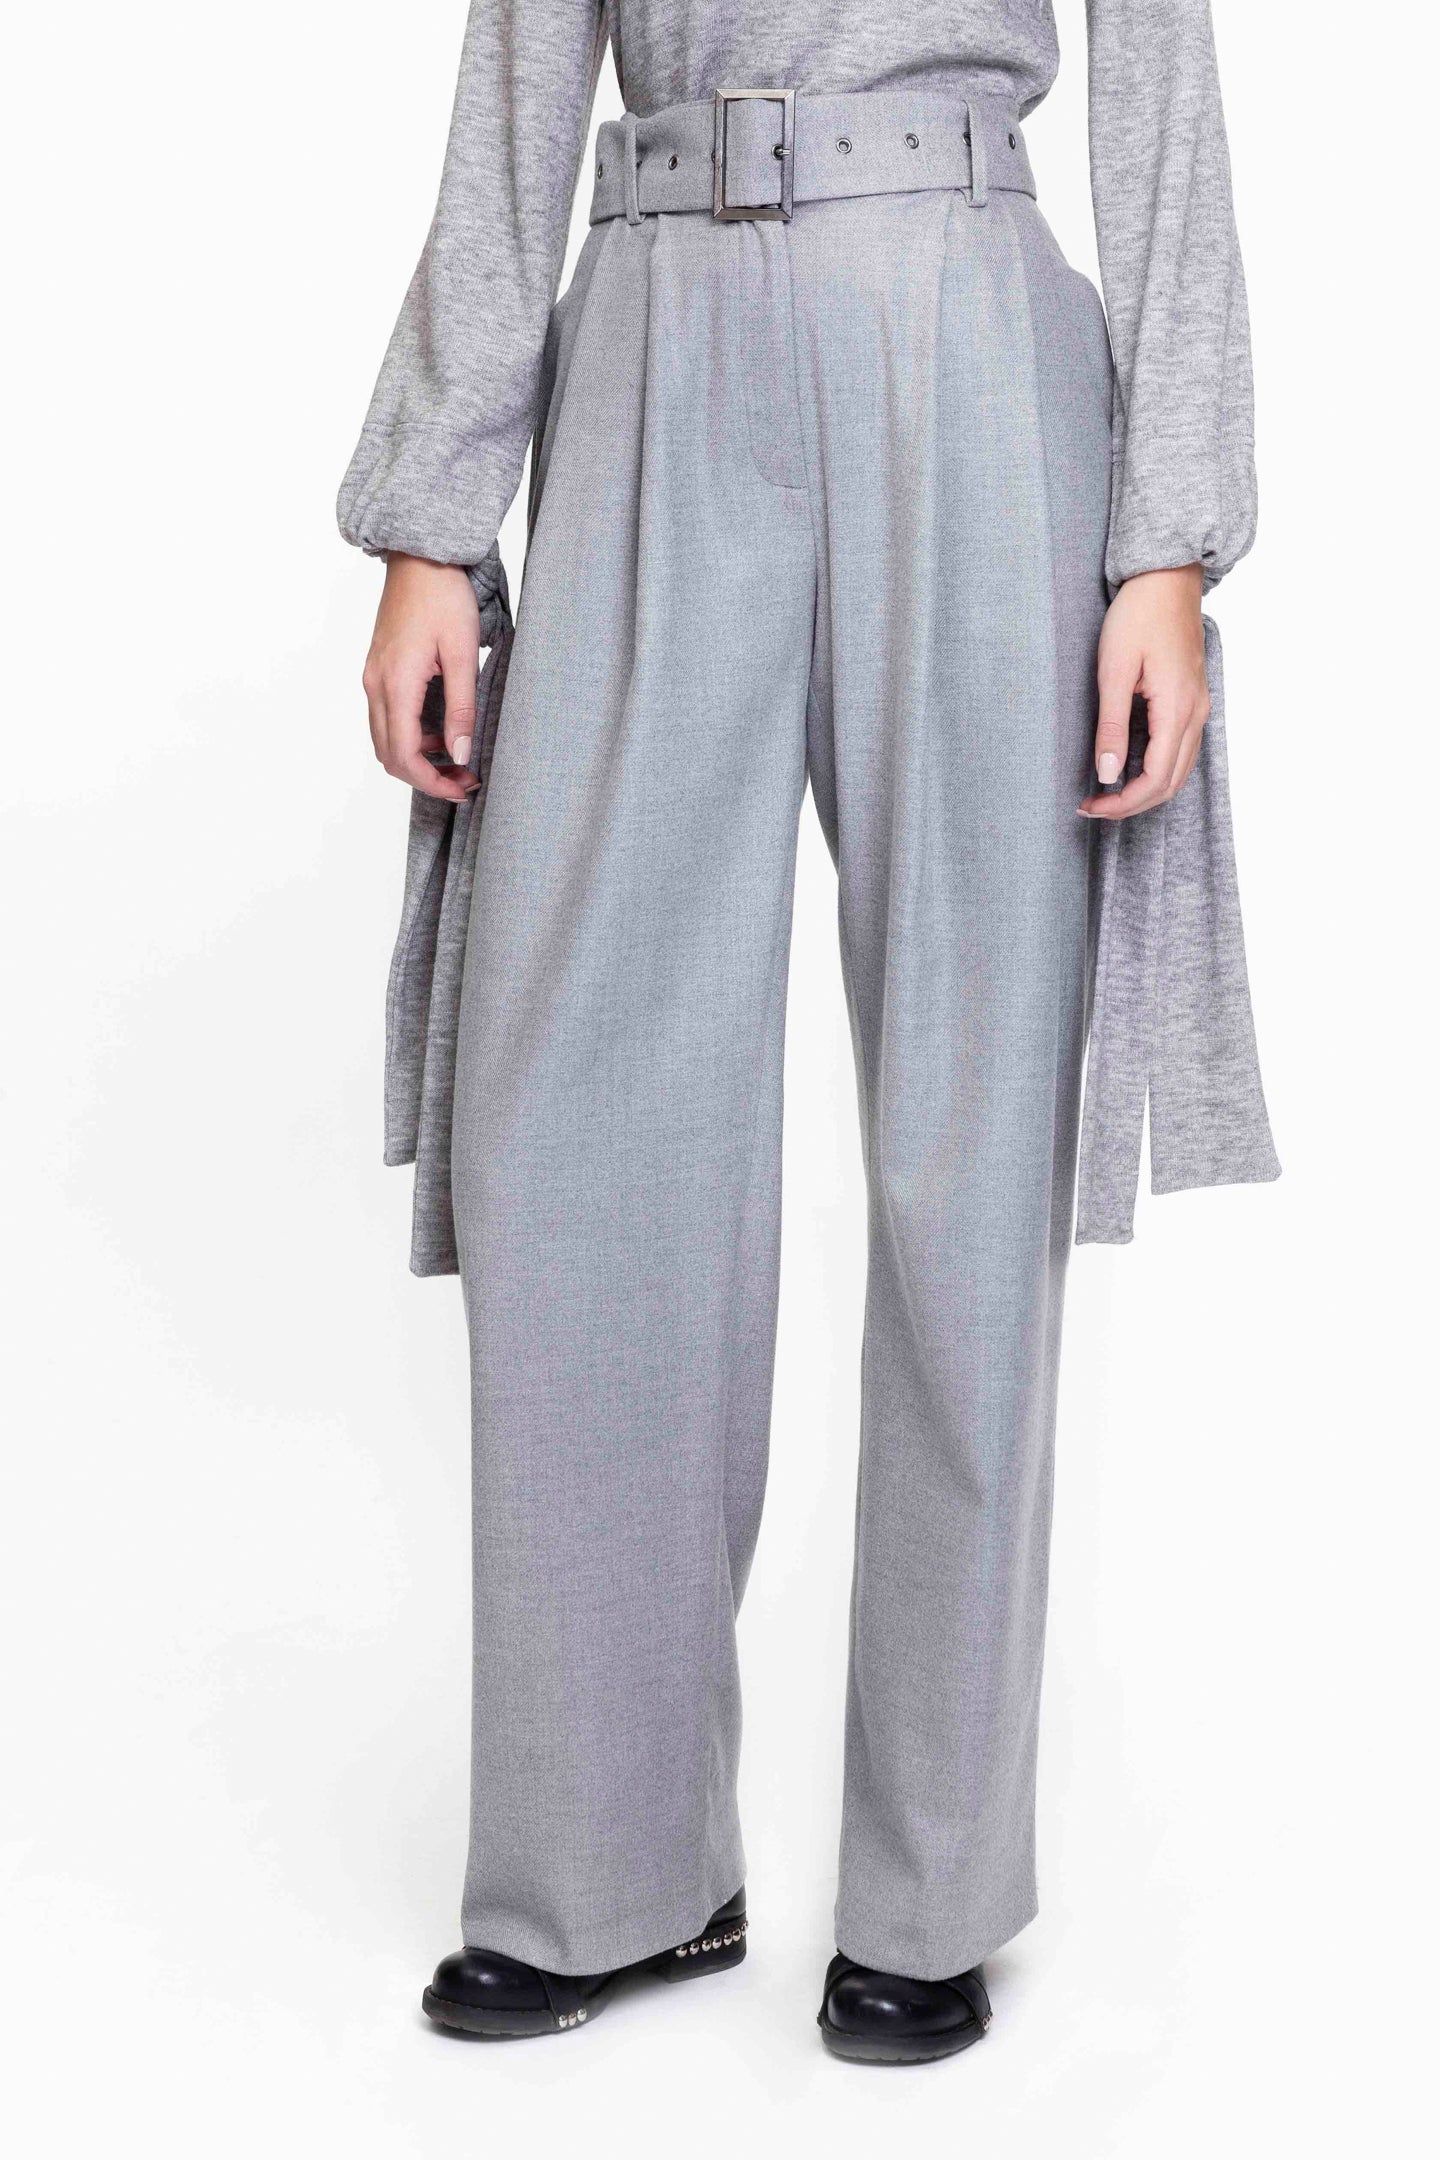 Sienna Grey Pants